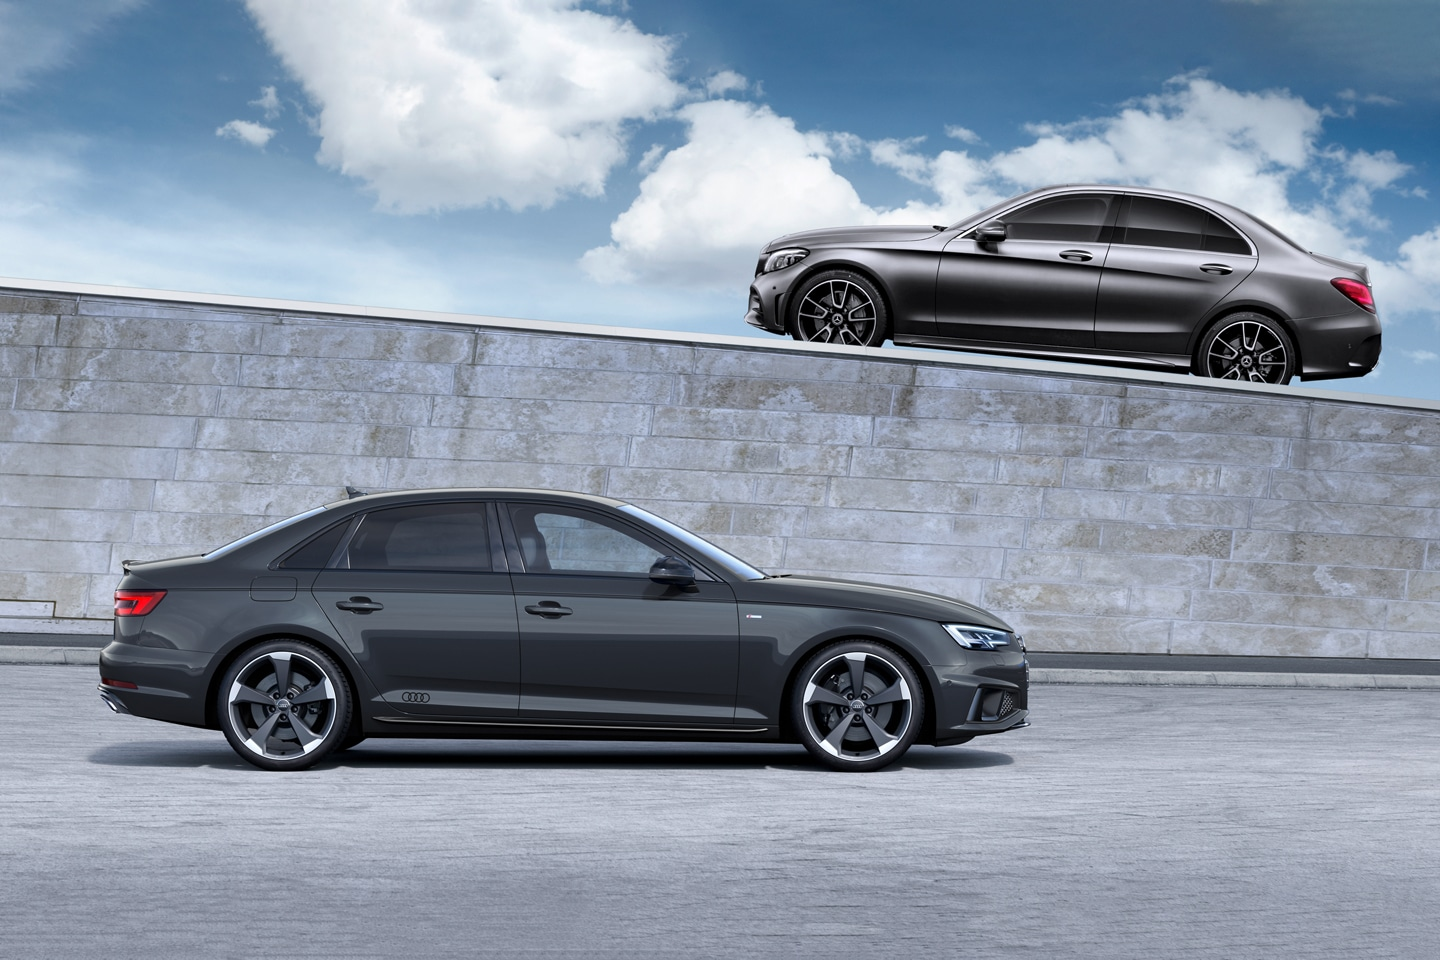 2019 Audi A4 Vs 2019 Mercedes C Class Quick Comparison Motor